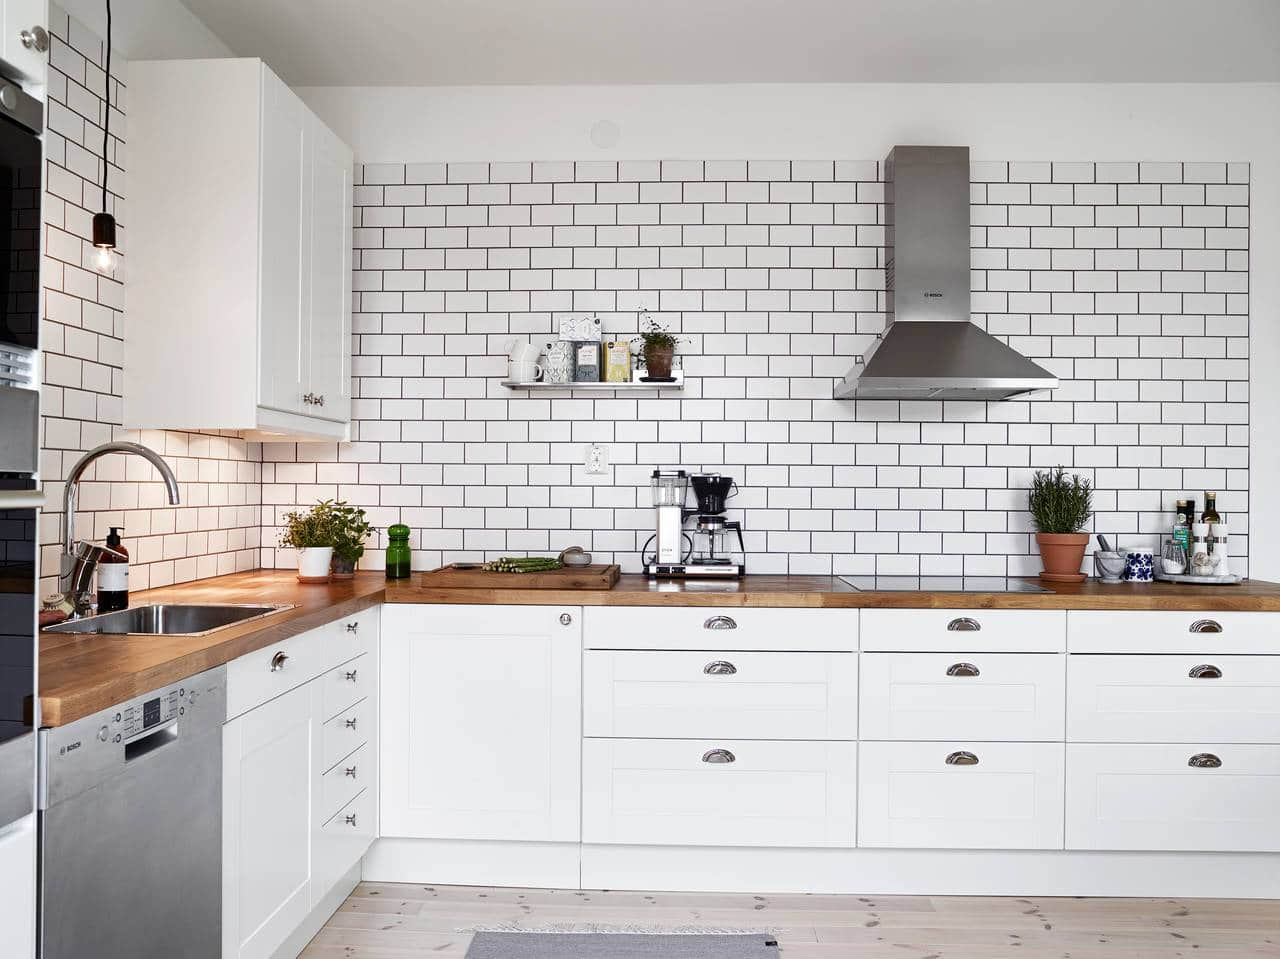 White Tiles Black Grout COCO LAPINE DESIGN